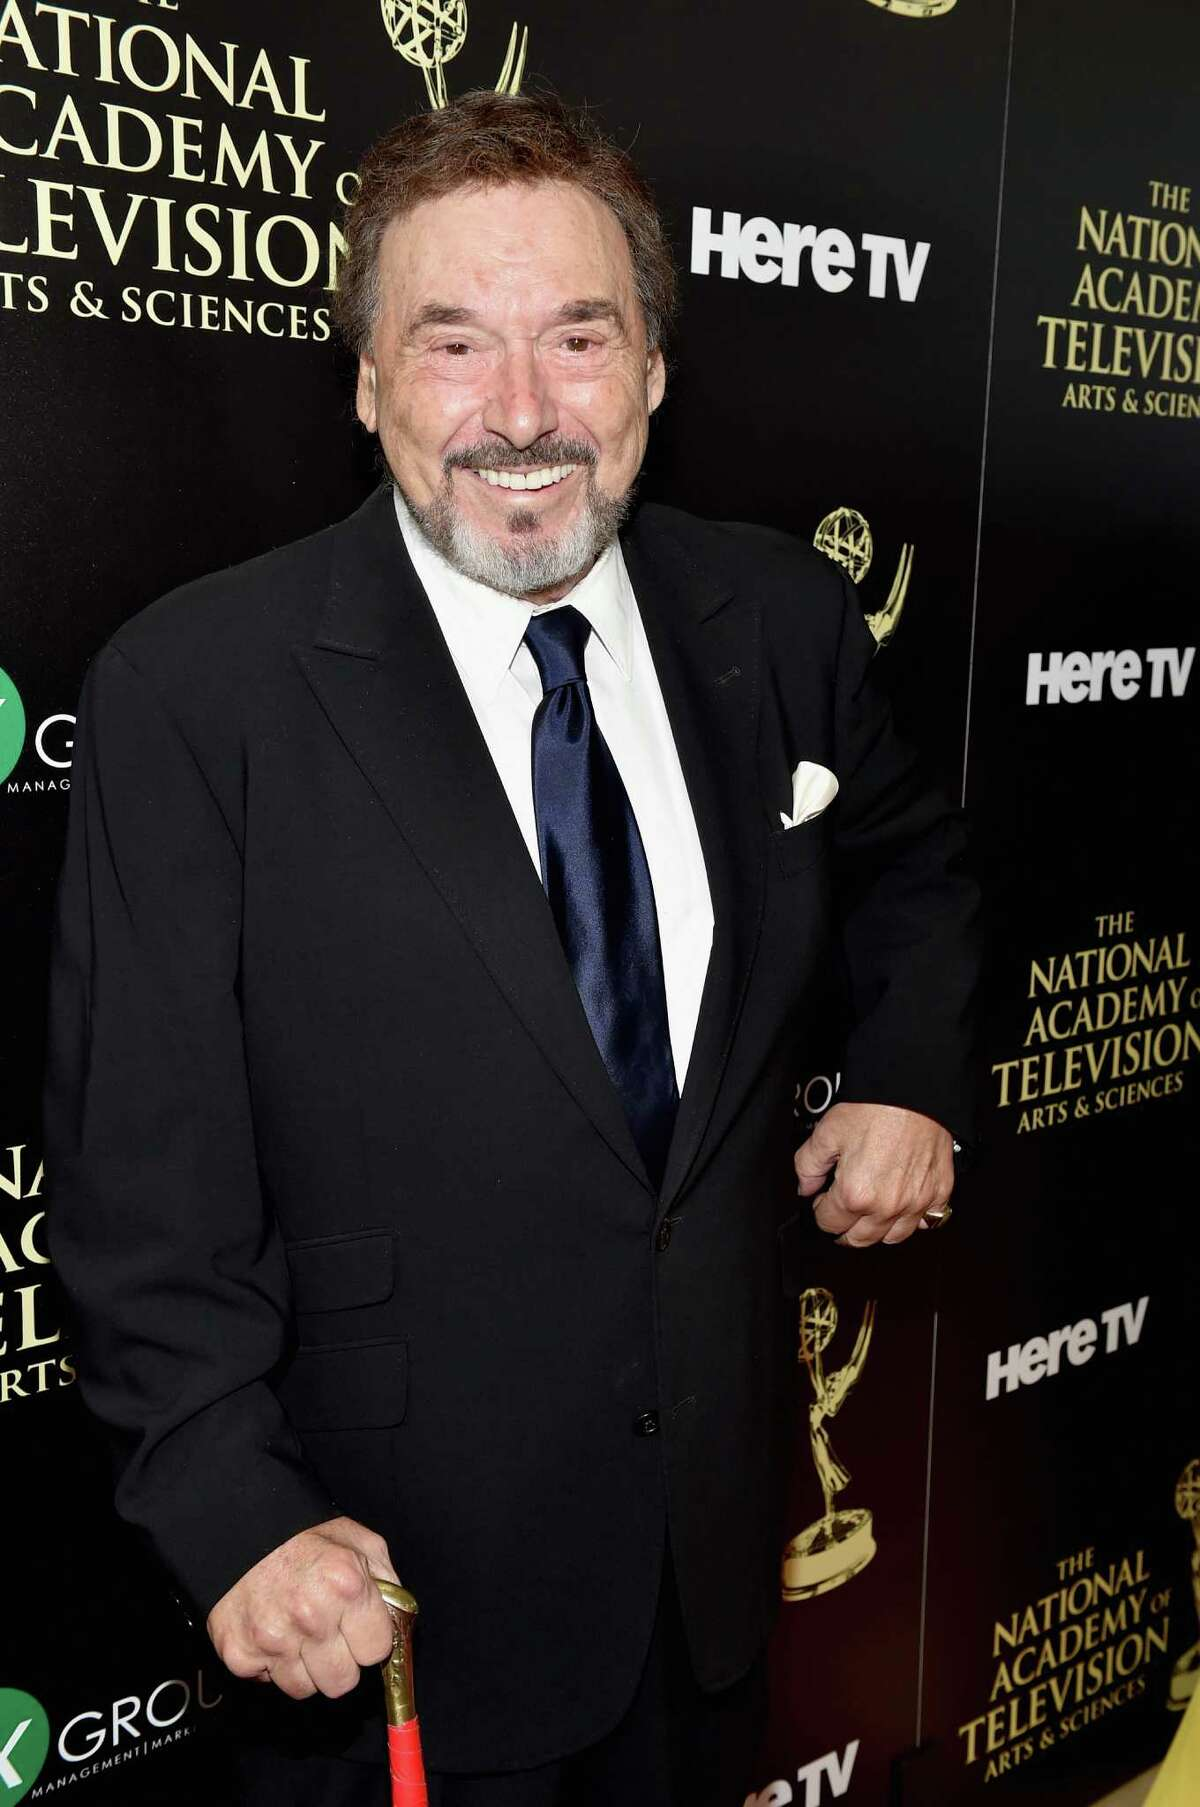 """Actor Joseph Mascolo, known for his work as a bad guy on """"Days of Our Lives,"""" battled with Alzheimer's disease. He was 87 years old."""